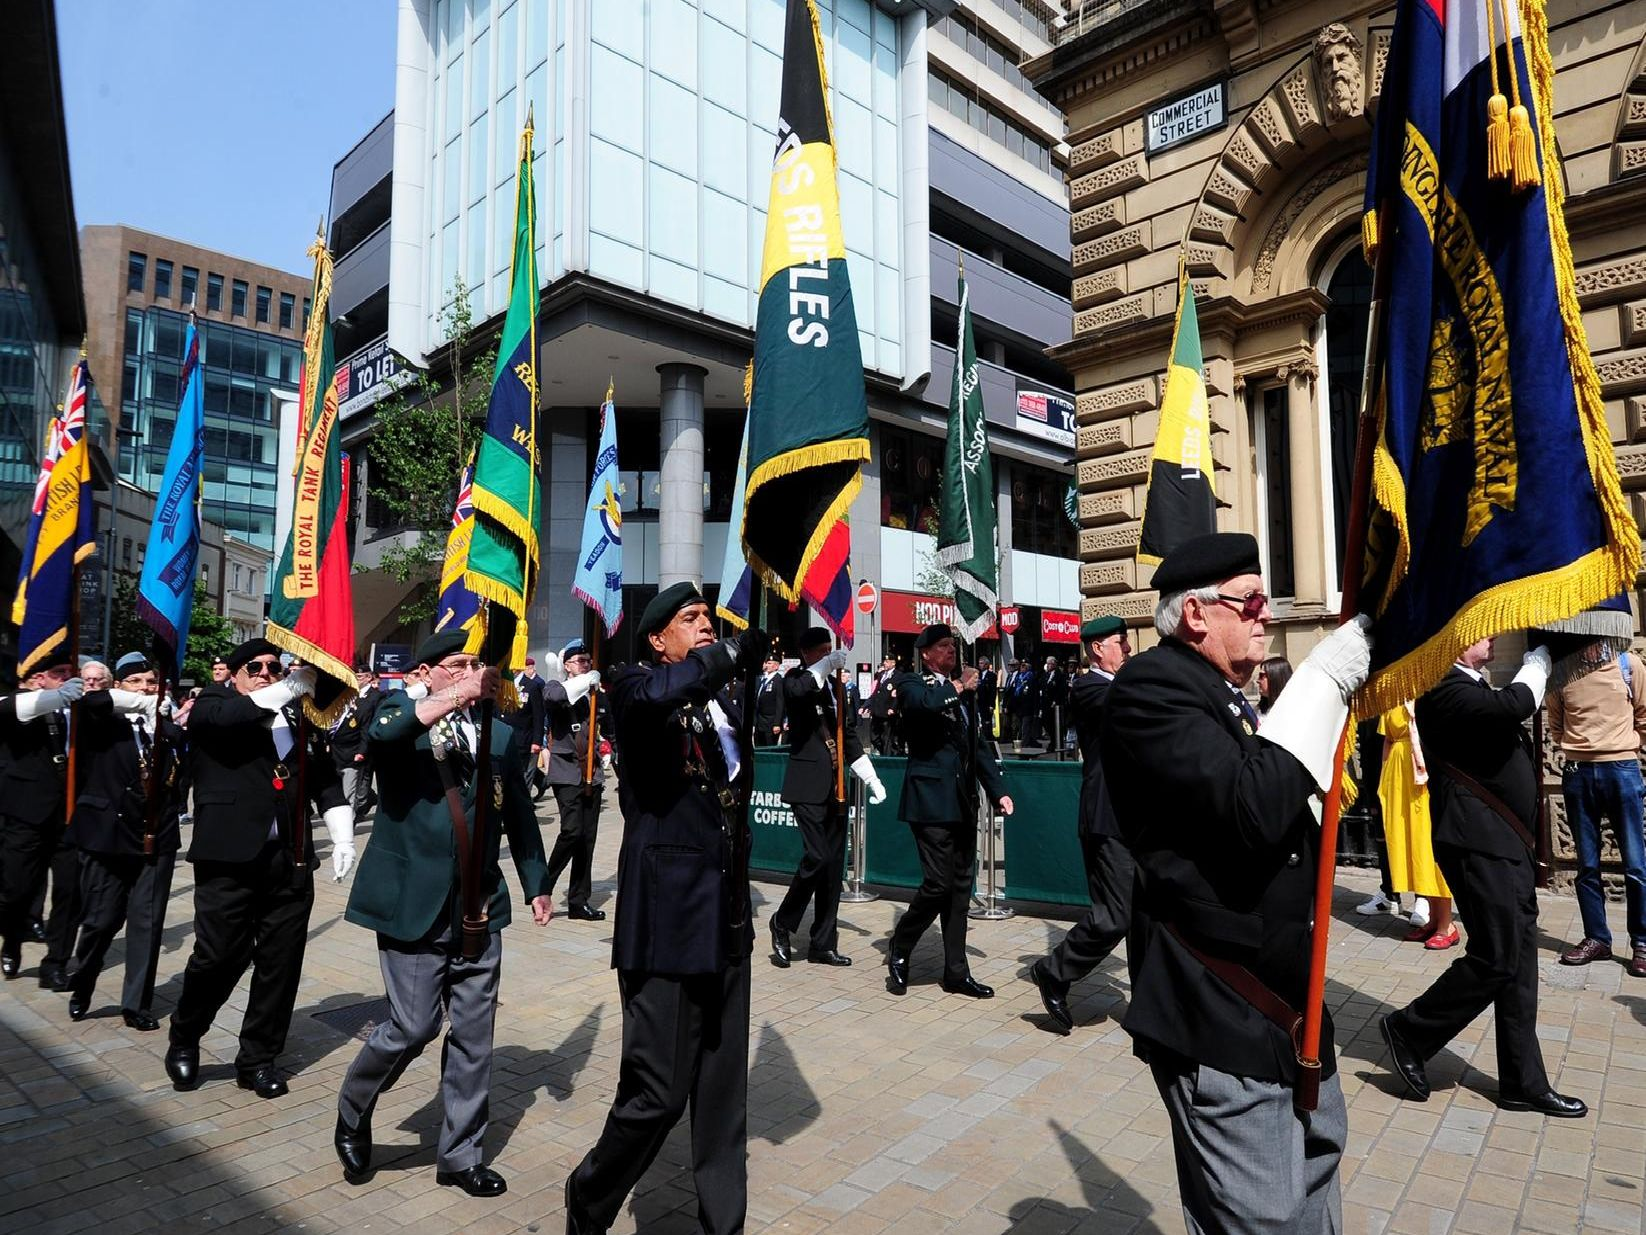 Flag bearers march down Commercial Street in Leeds city centre.